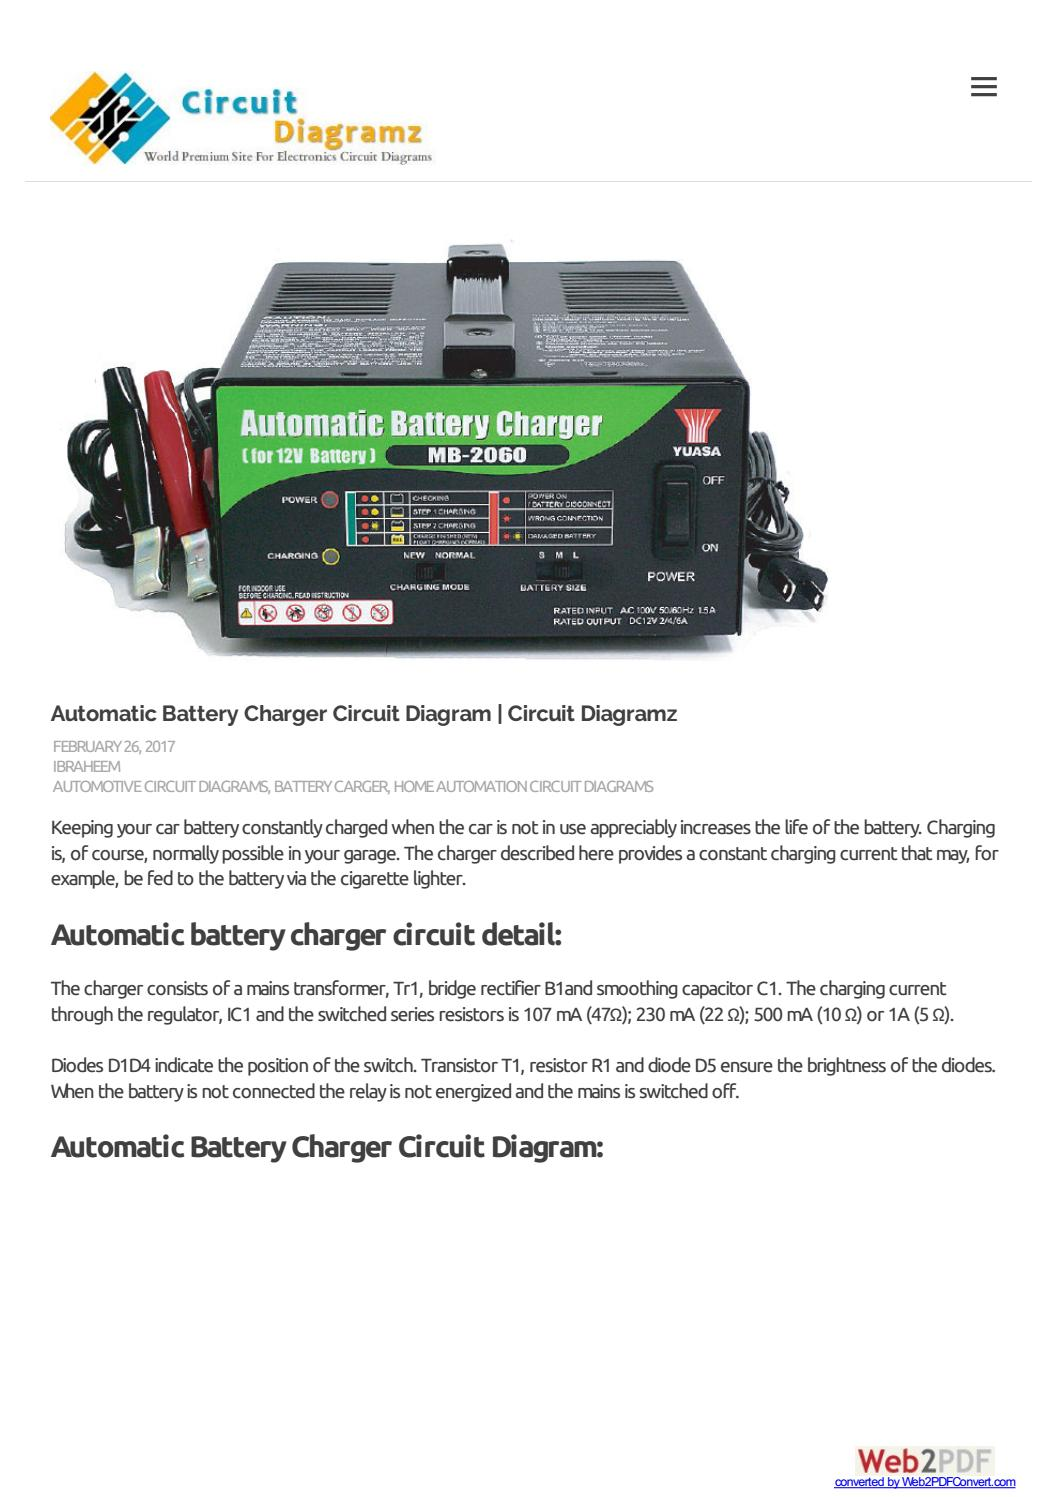 Automatic Battery Charger Circuit Diagram Diagramz By Function Generator Automotivecircuit Robin Issuu